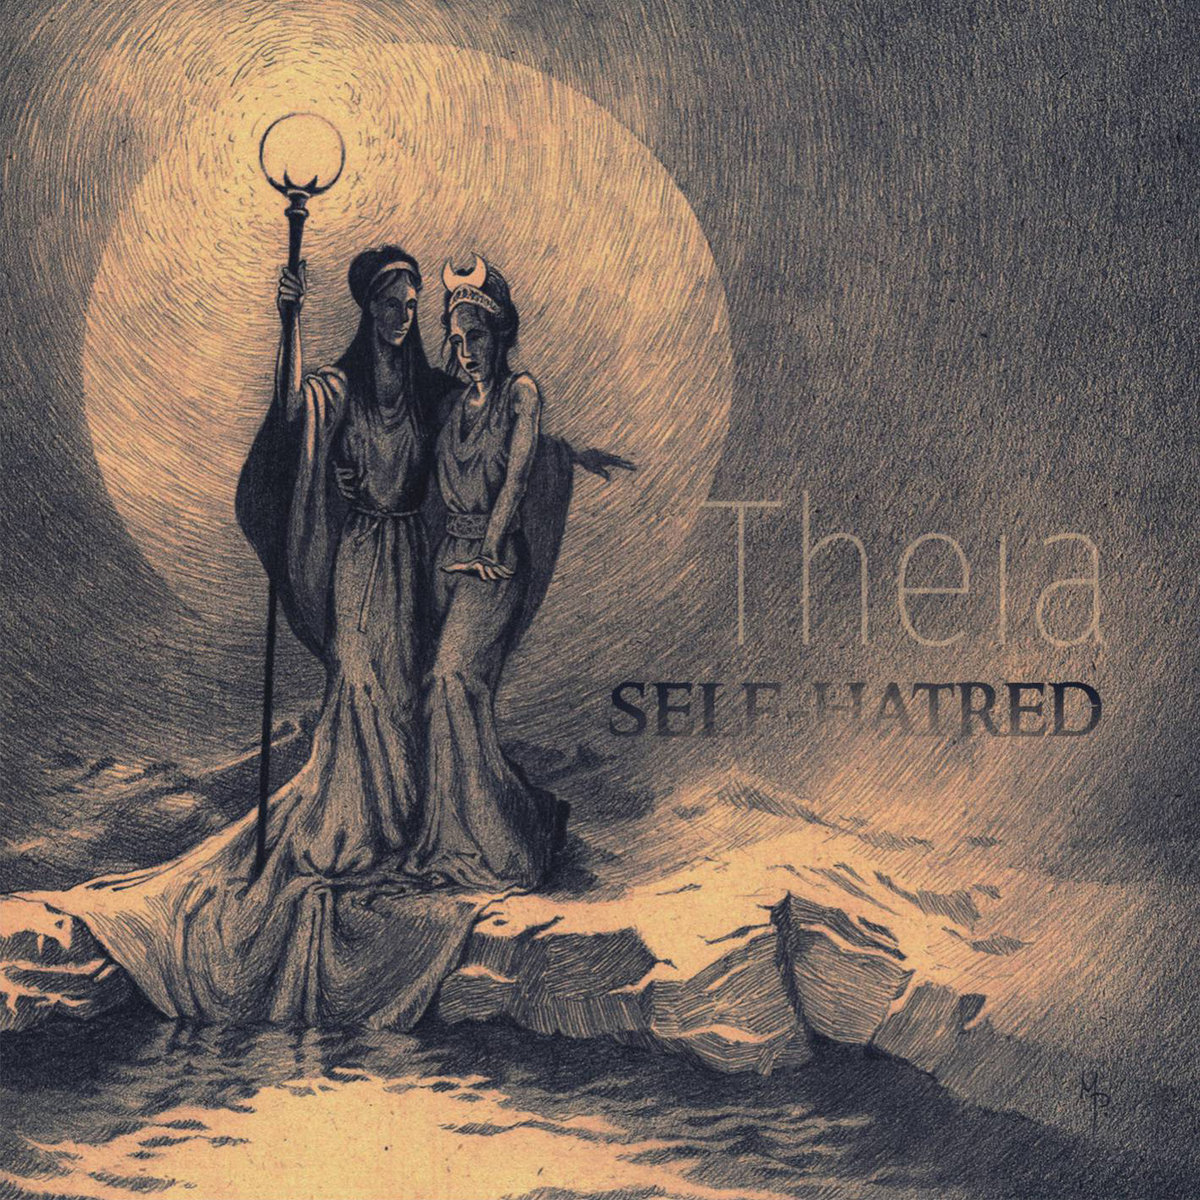 1. Self-Hatred - Theia